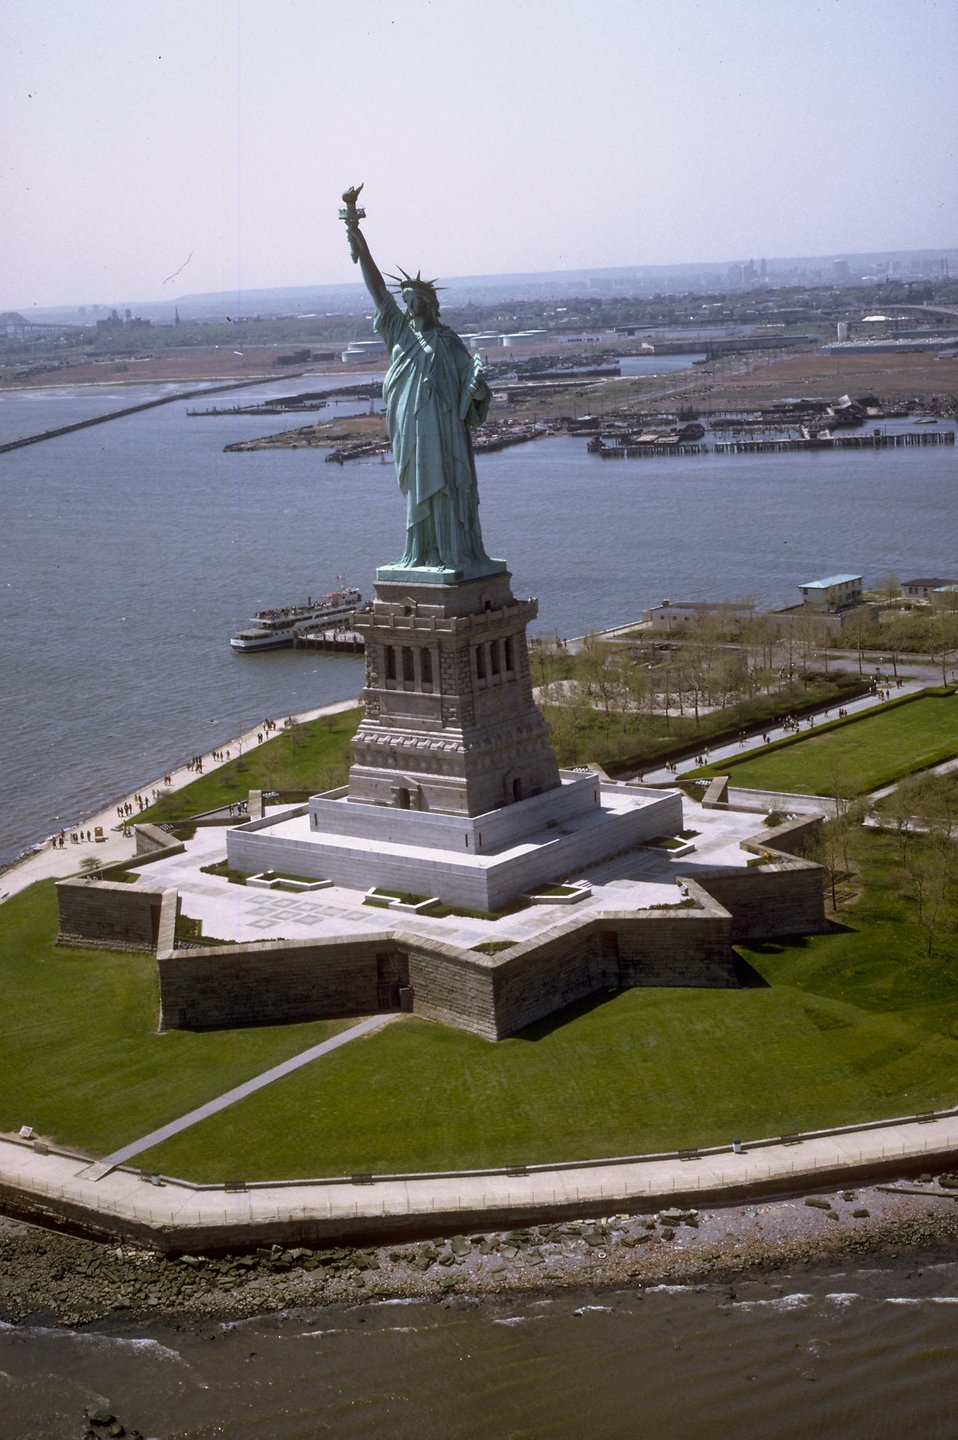 The Statue of Liberty monument on Liberty Island : Free Stock Photo